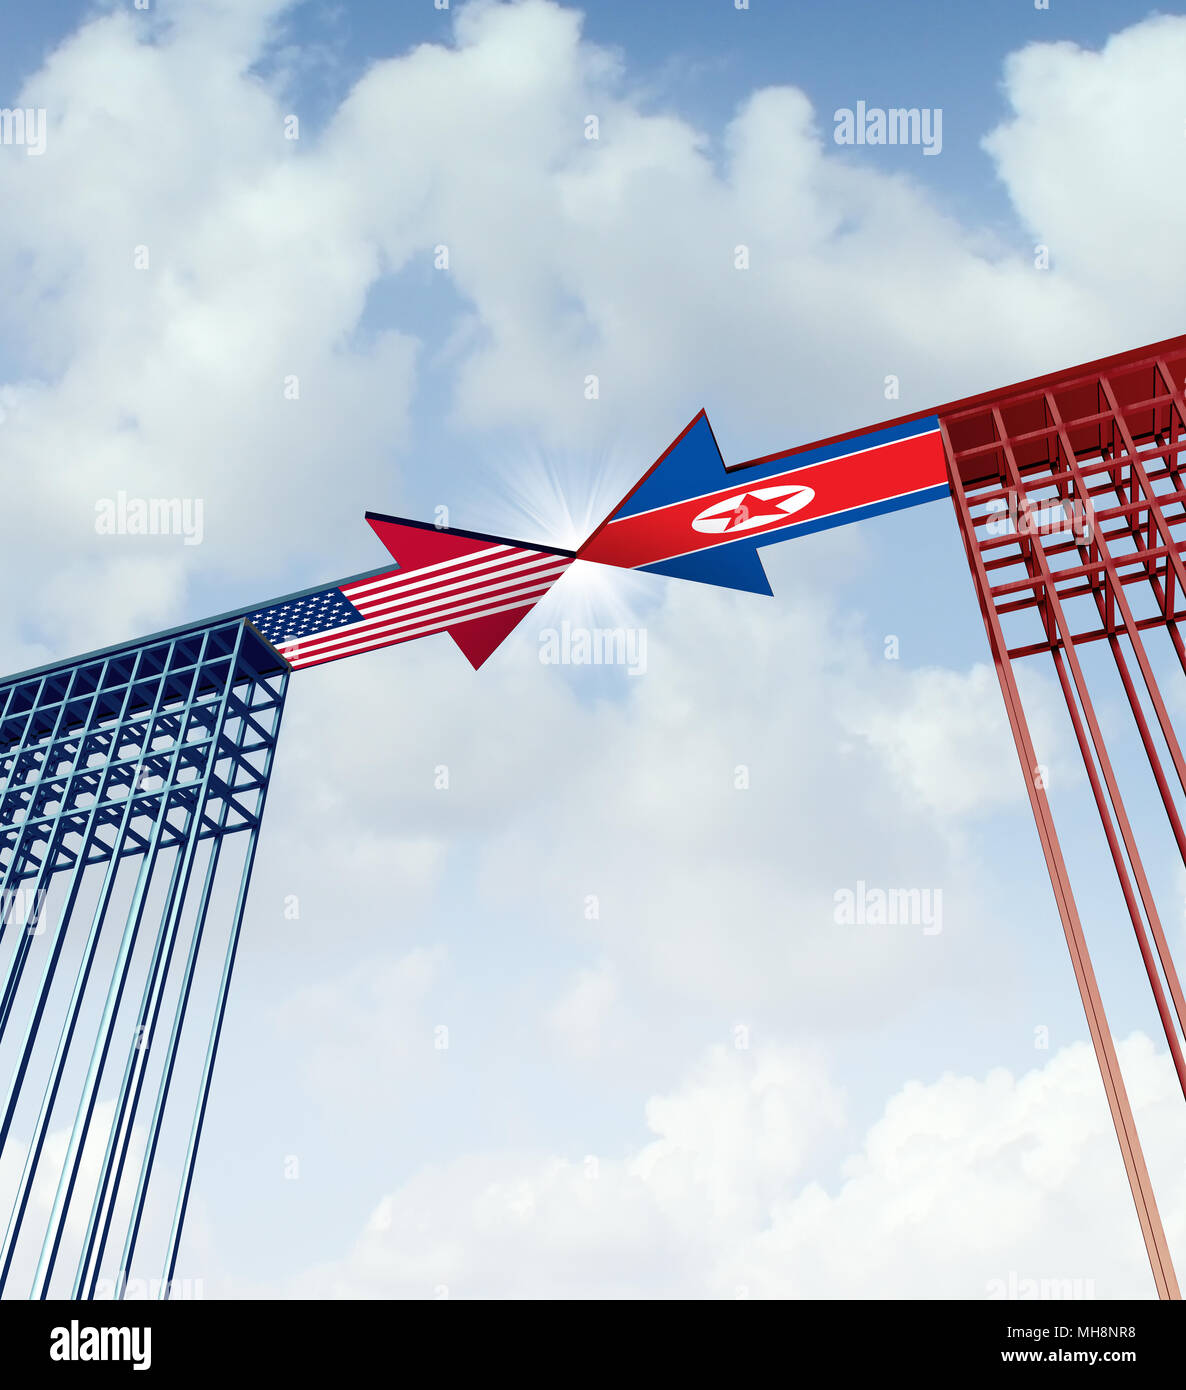 North Korea United States success agreement and diplomacy meeting between pyongyang and washington as an east asian crisis negotiation connection. - Stock Image